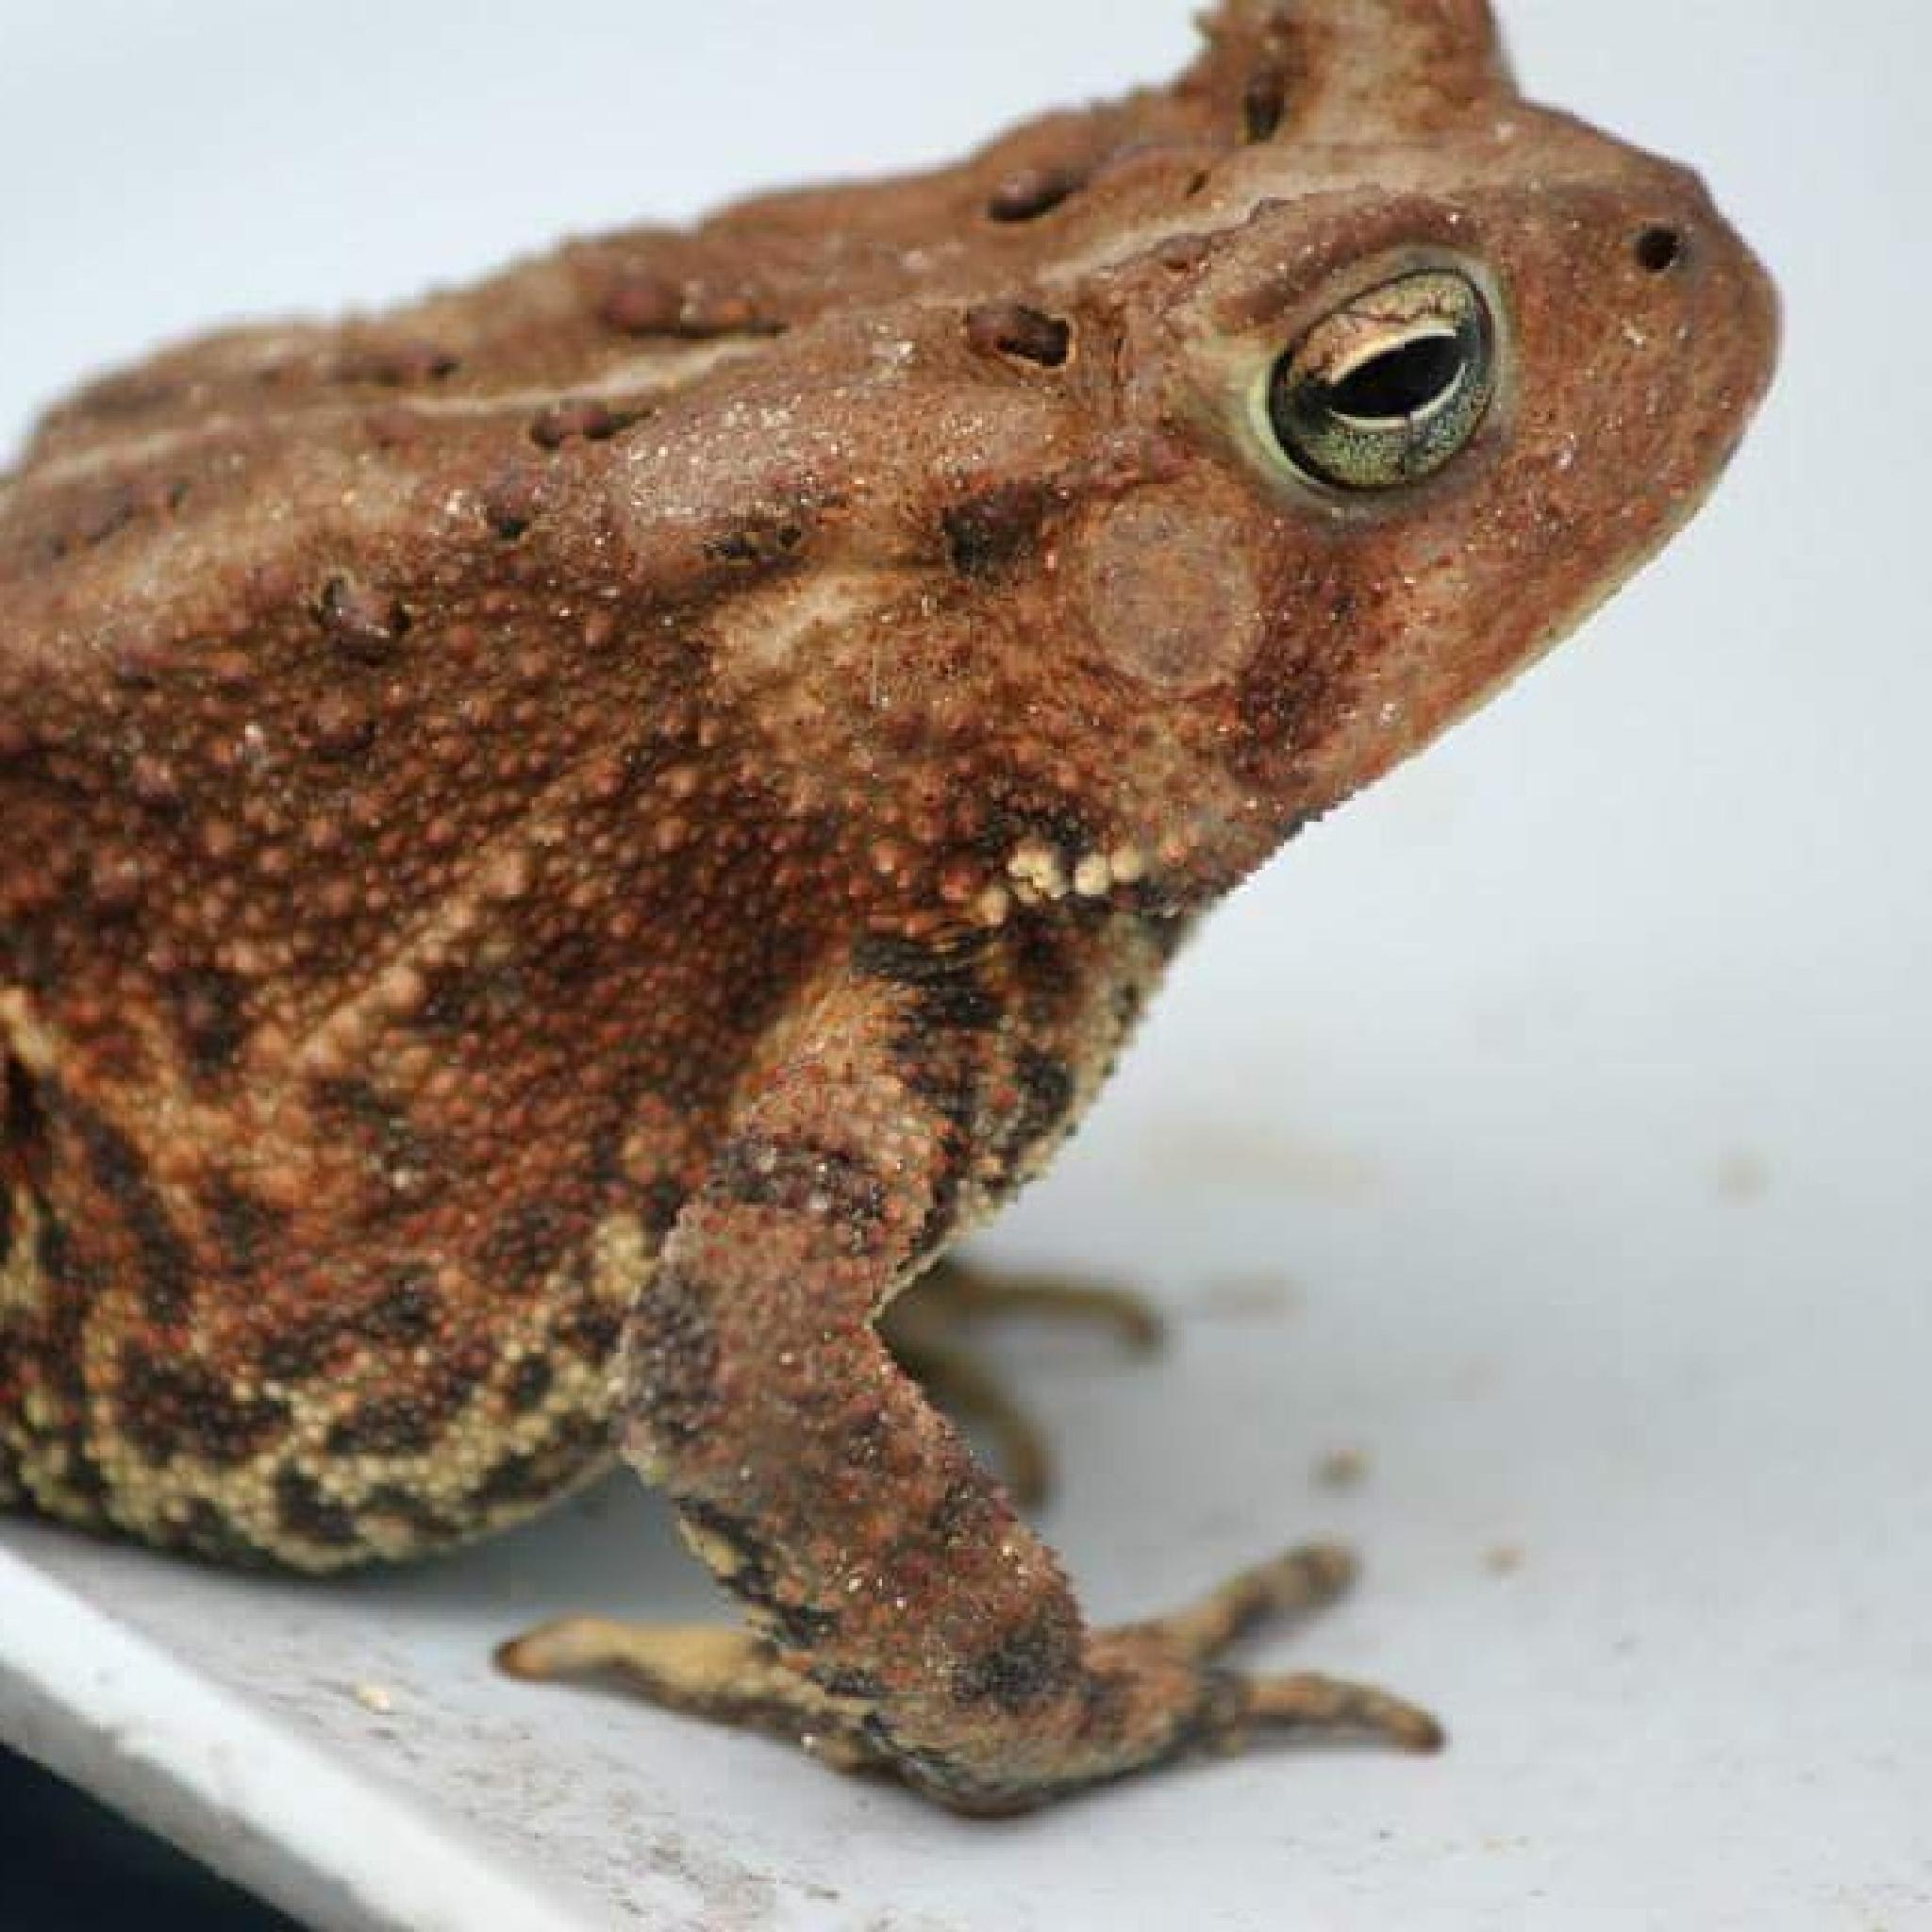 Toad by kimberly.sterling.351